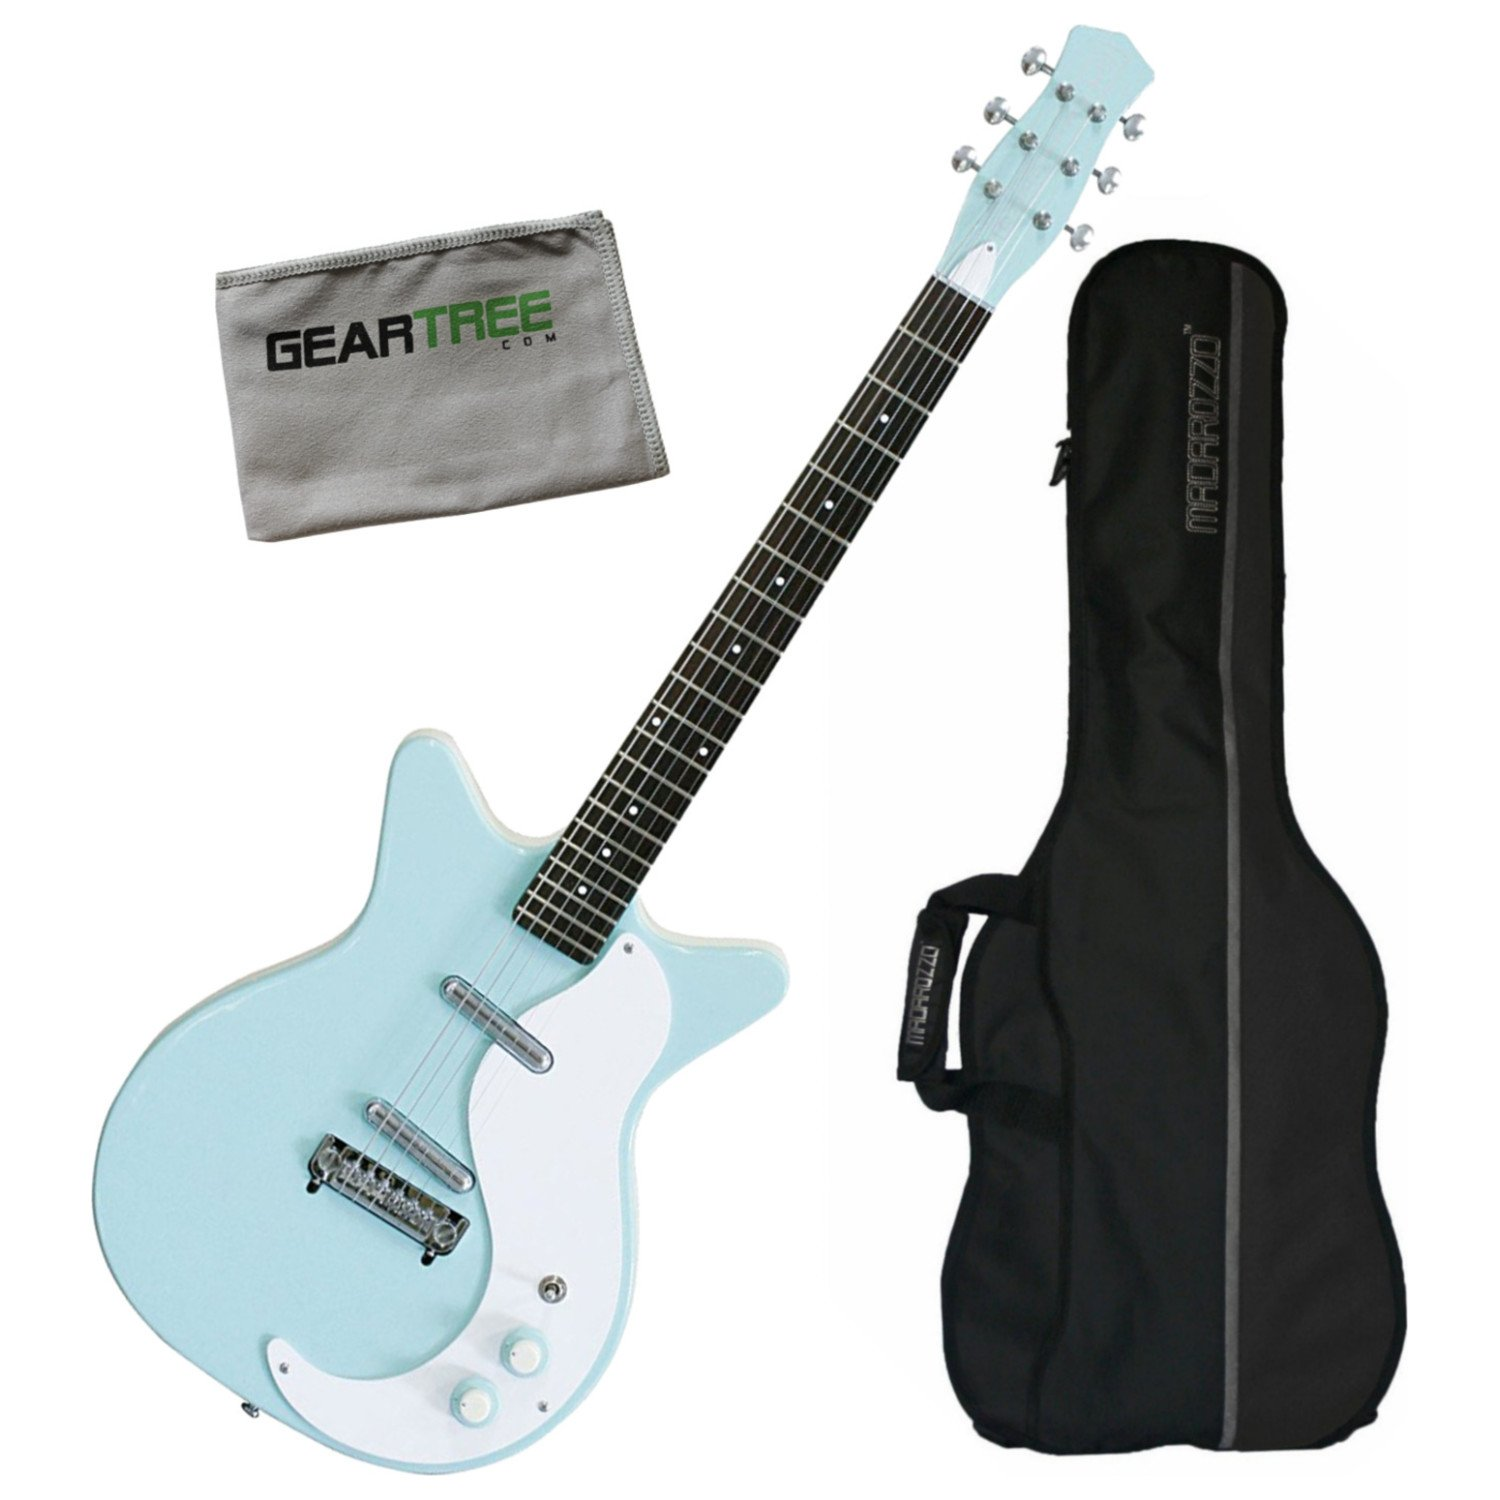 Cheap Danelectro 59M-NOS+ Double Cutaway Electric Guitar Aqua w/Gig Bag and Geartree Black Friday & Cyber Monday 2019